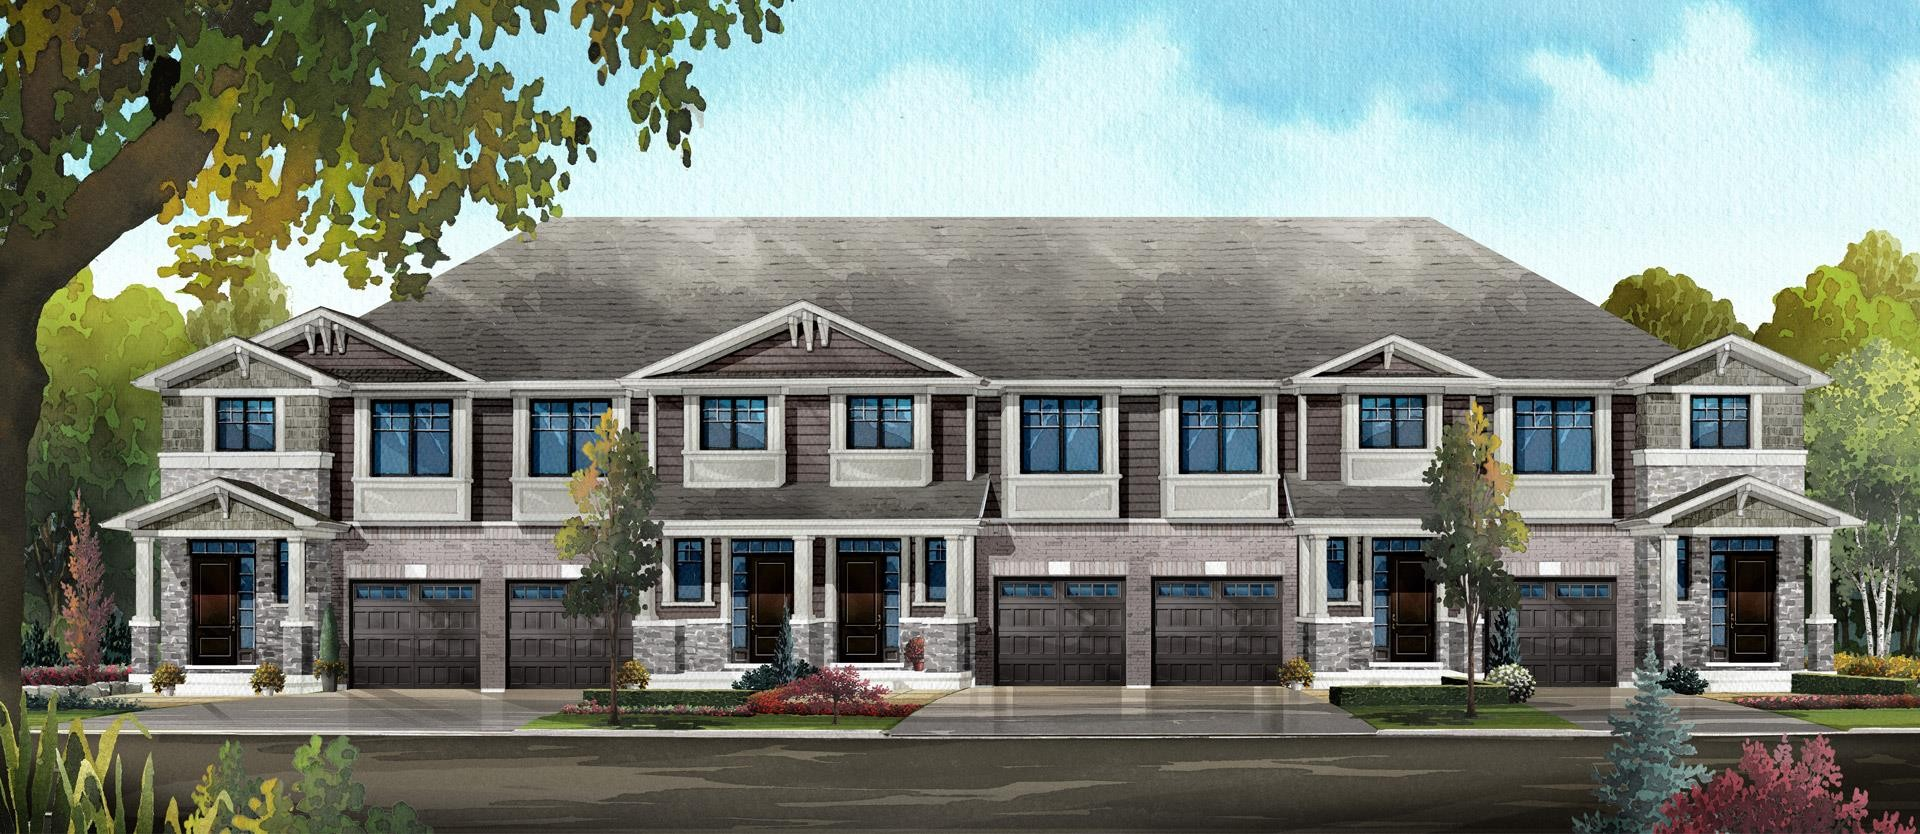 Life Townhomes at 288 Glover Rd, Stoney Creek 0